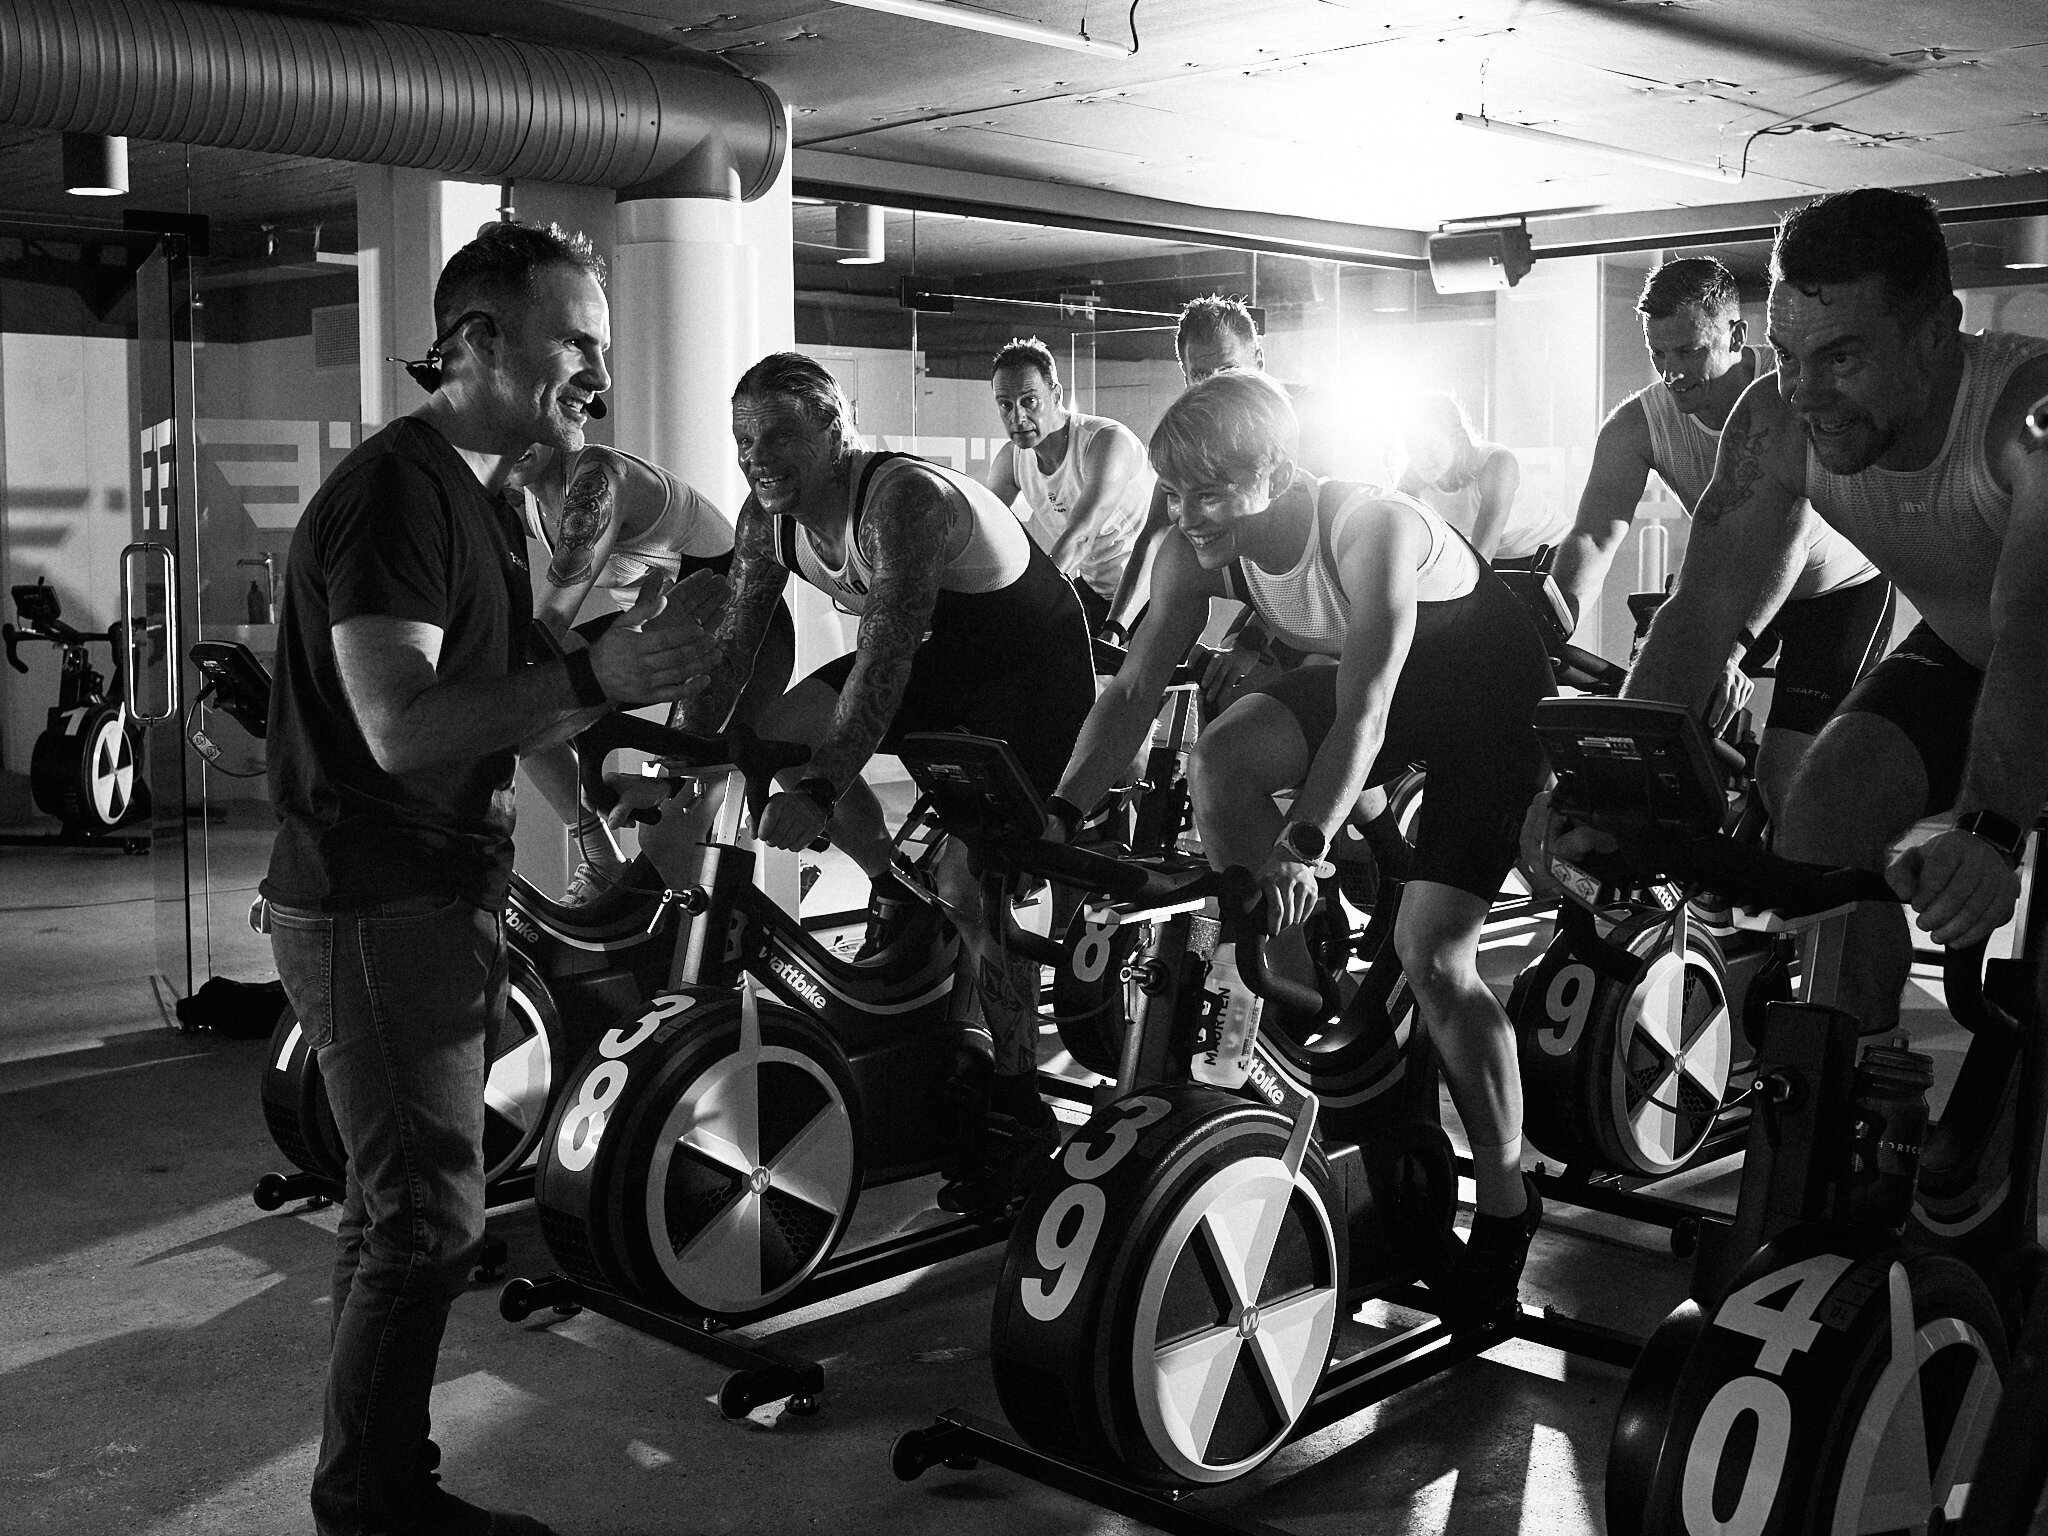 COAch - We're looking for keen cyclists who understand training with power and have experience coaching classes. If you think you have what it takes to be part of the best cycling studio in Sweden, please get in touch! Send your CV and a short paragraph about yourself to selby@studiolechelon.com